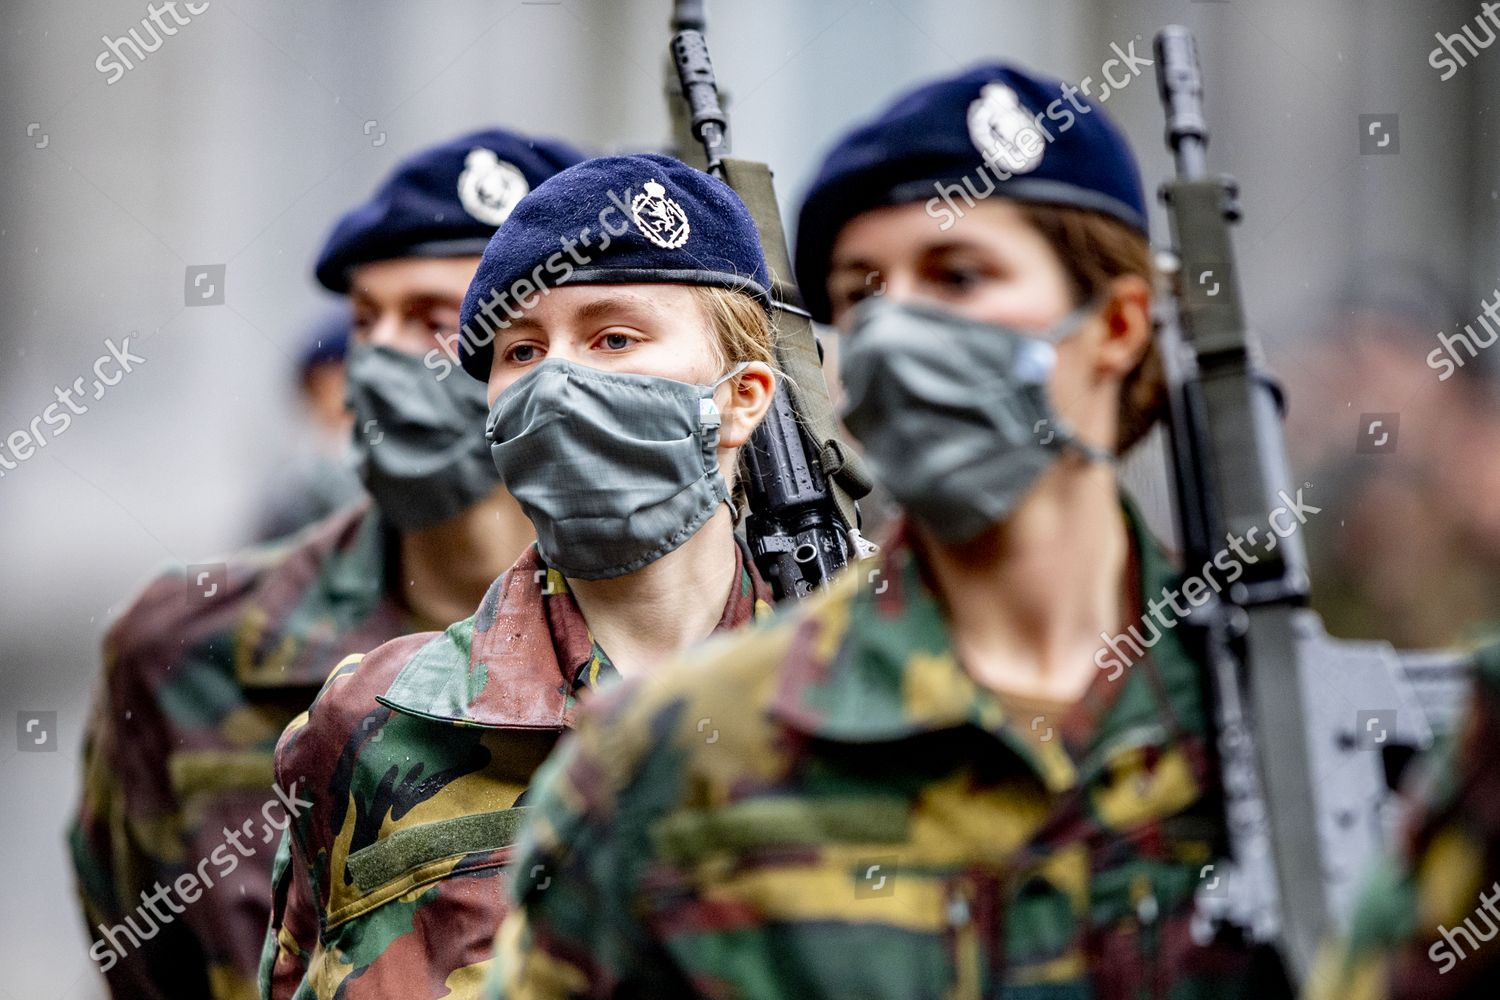 belgian-royals-attend-ceremony-for-the-presentation-of-the-blue-berets-royal-military-academy-erm-brussels-belgium-shutterstock-editorial-10790505x.jpg